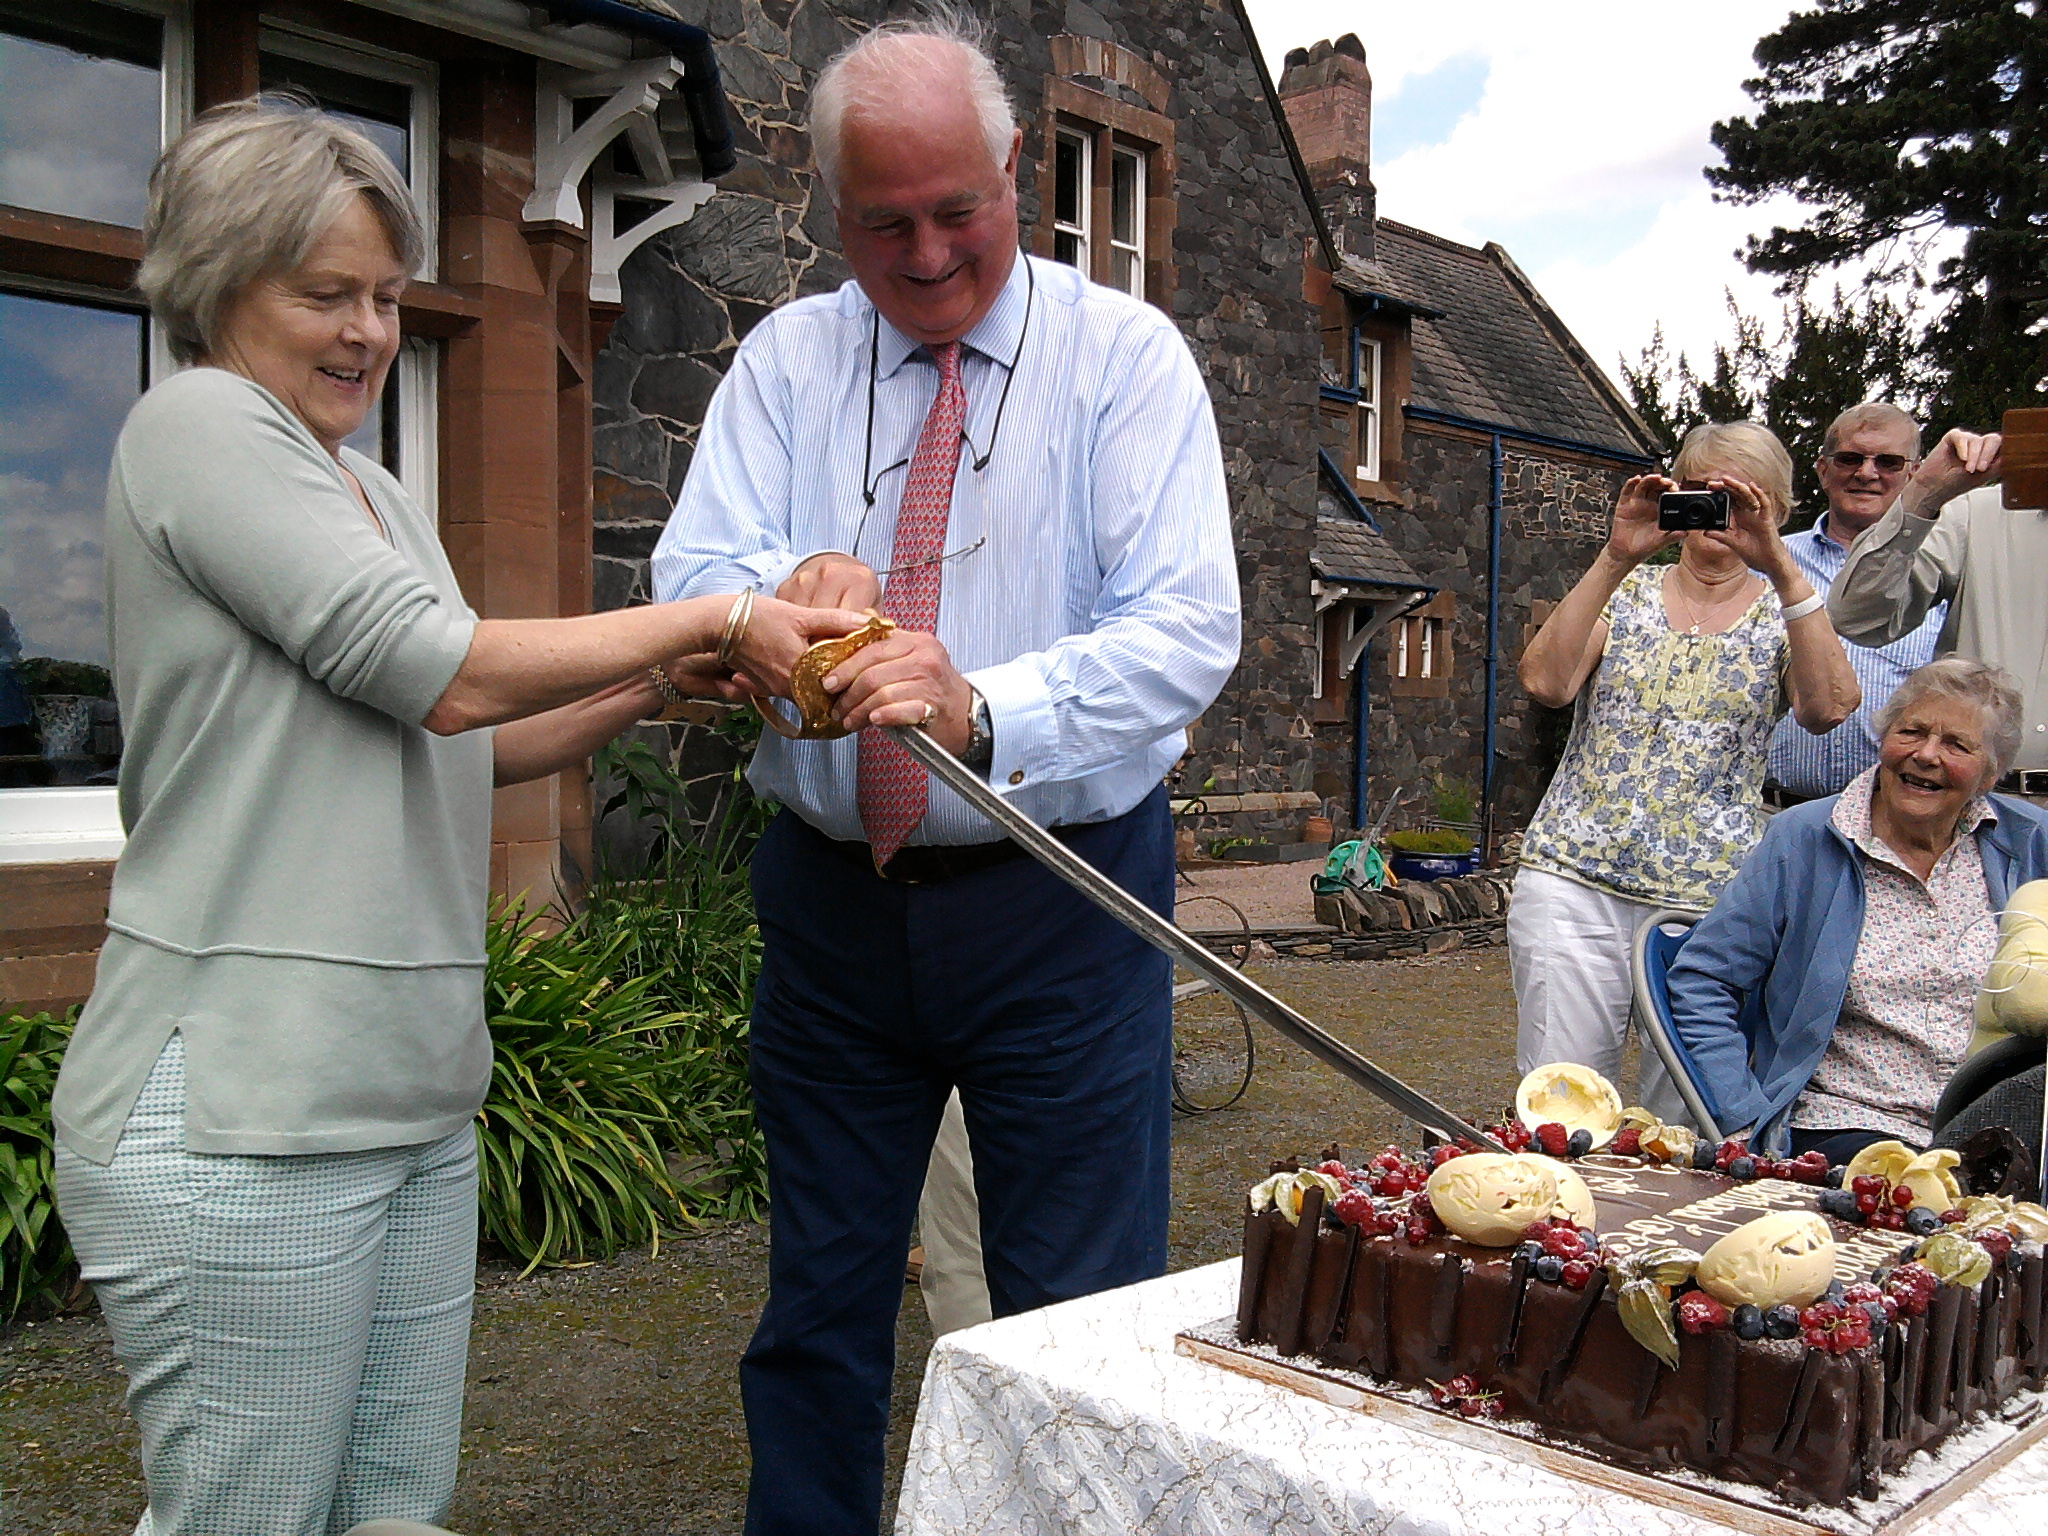 Robert and Janie Martin cutting the Anniversary Cake